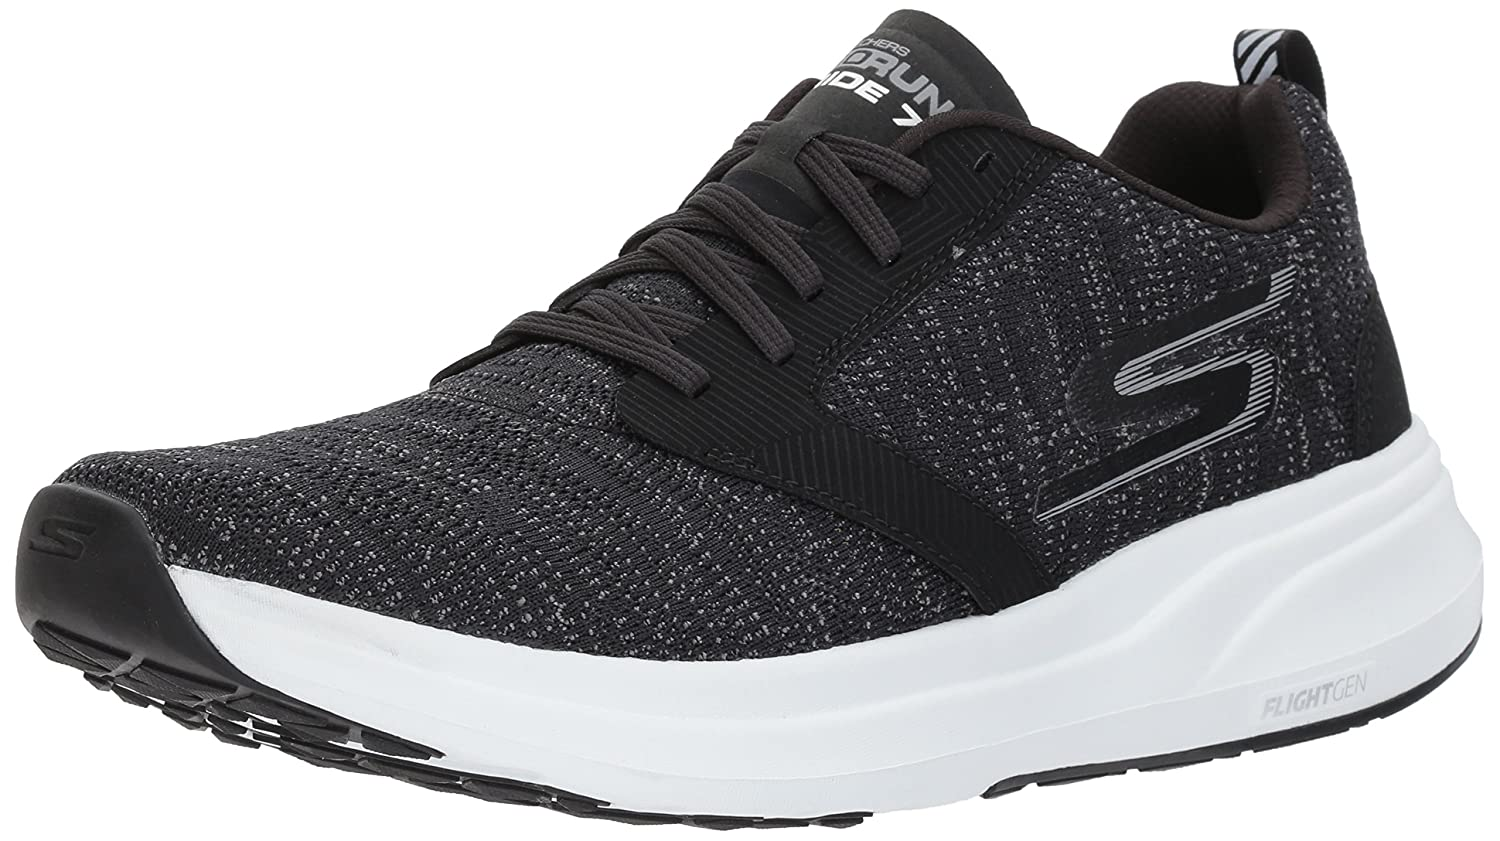 4859f094 Amazon.com | Skechers Men's Go Run Ride 7 Shoe | Road Running